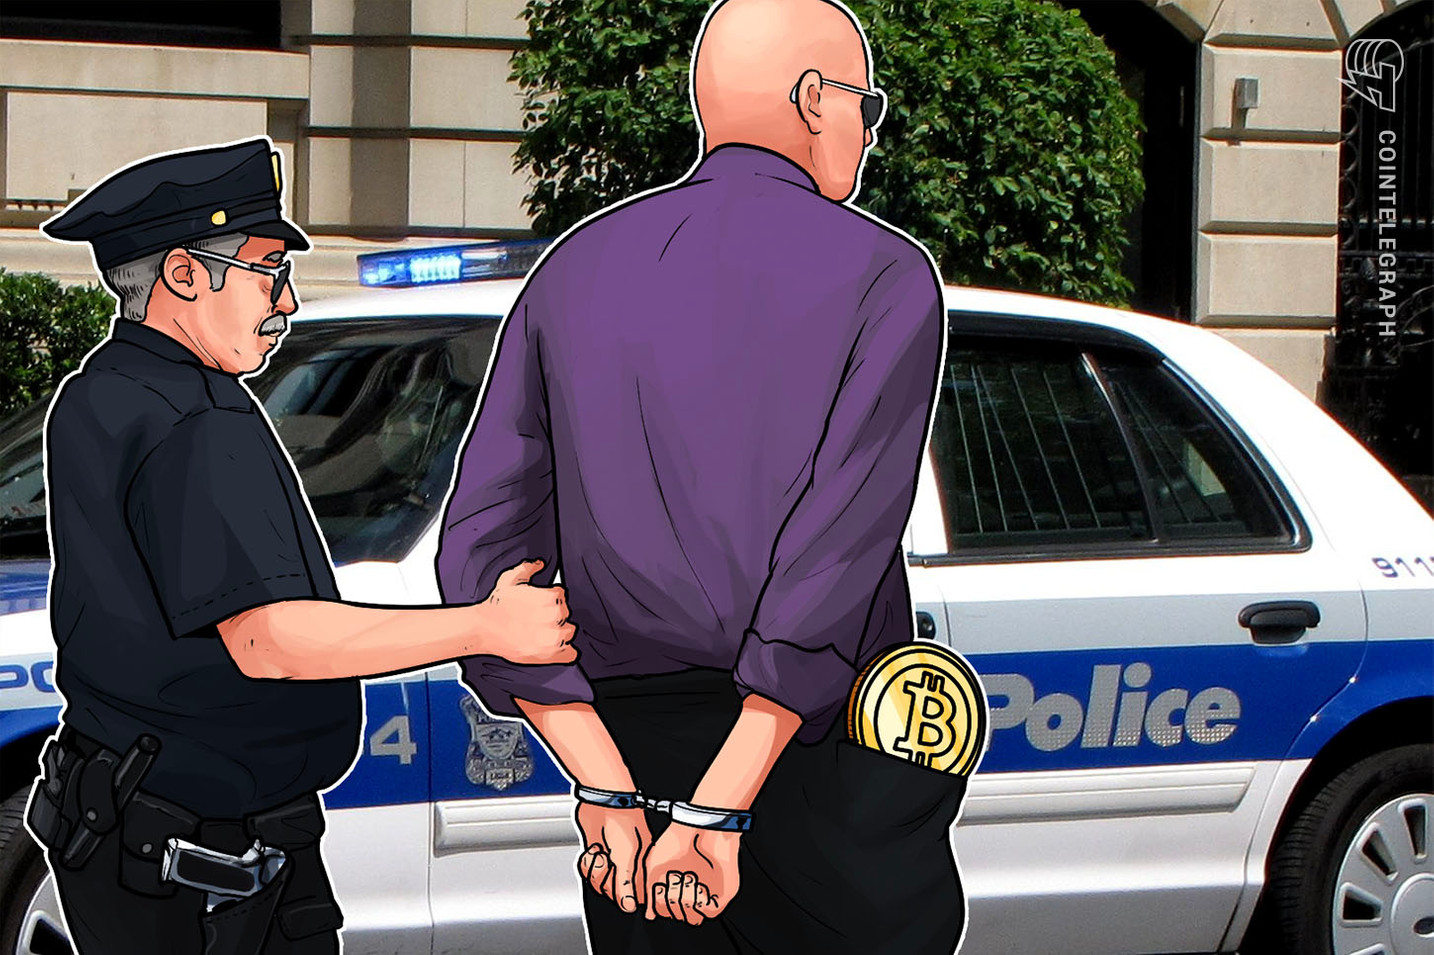 Alleged Bitcoin Fraudster Renwick Haddow Extradited From Morocco To US